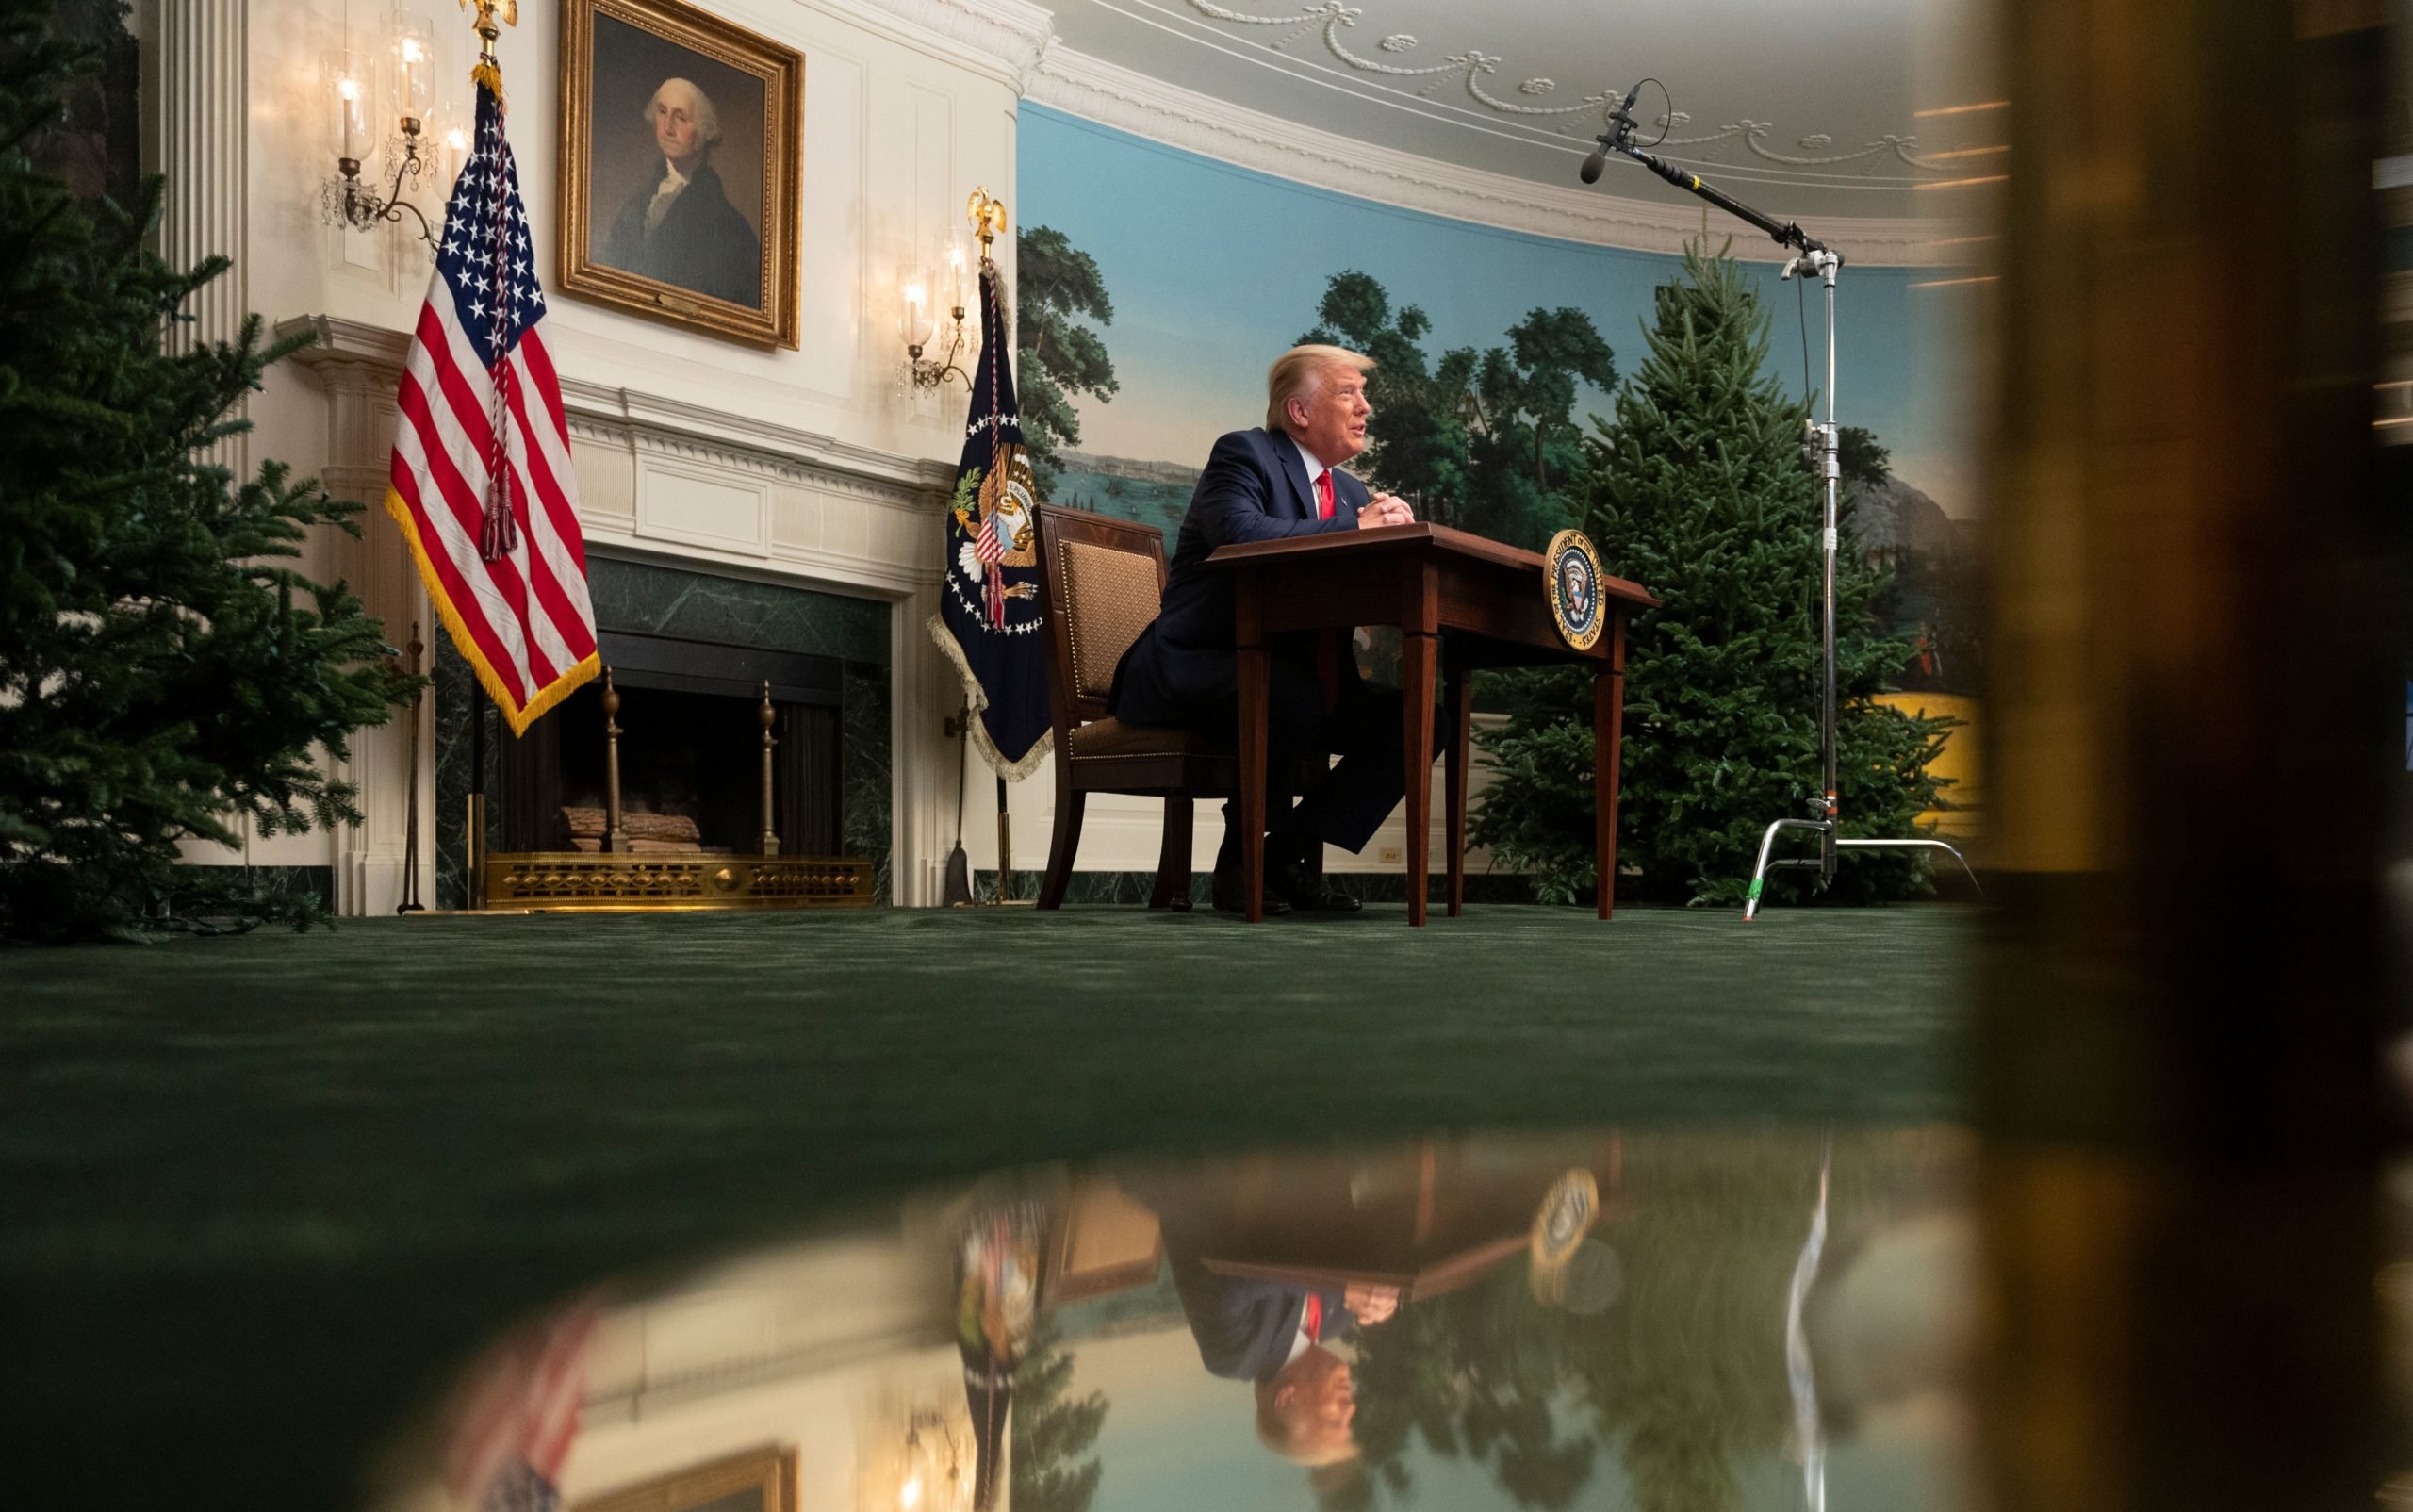 US President Donald Trump speaks to reporters after participating in a Thanksgiving teleconference with members of the United States Military, at the White House in Washington, DC, on November 26, 2020. (Photo by ANDREW CABALLERO-REYNOLDS/AFP via Getty Images)